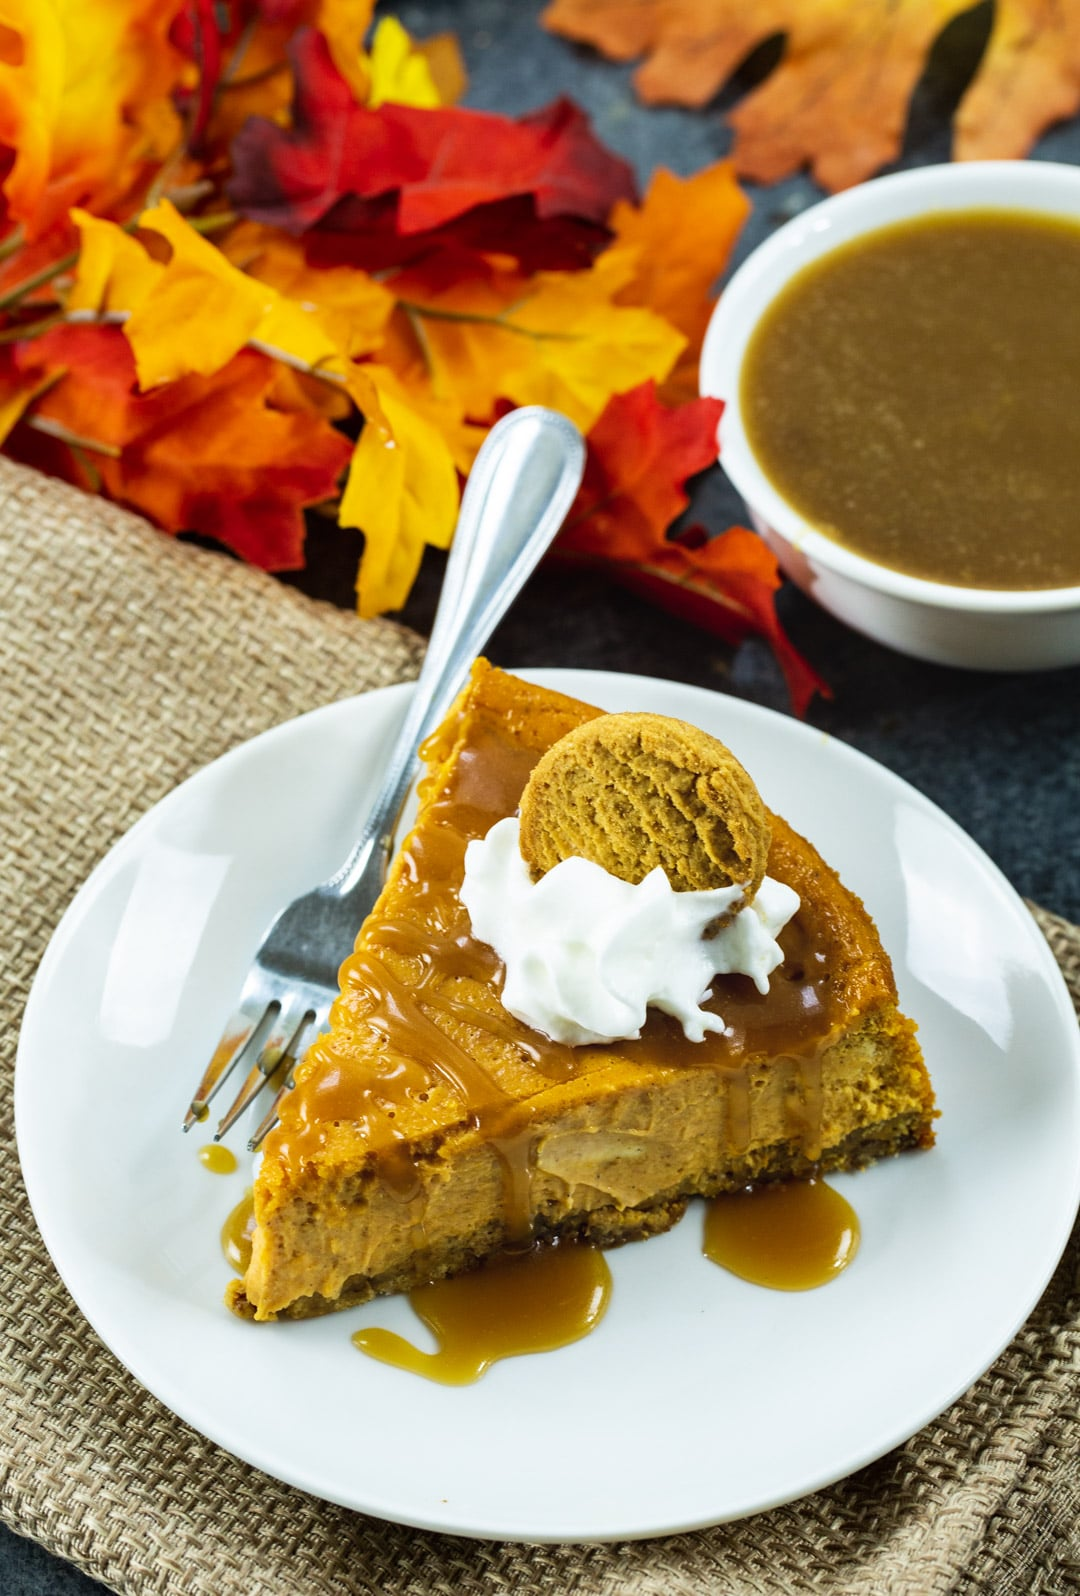 Pumpkin Cheesecake with Gingersnap Crust on a plate, plus fall leaves and a bowl of caramel sauce.